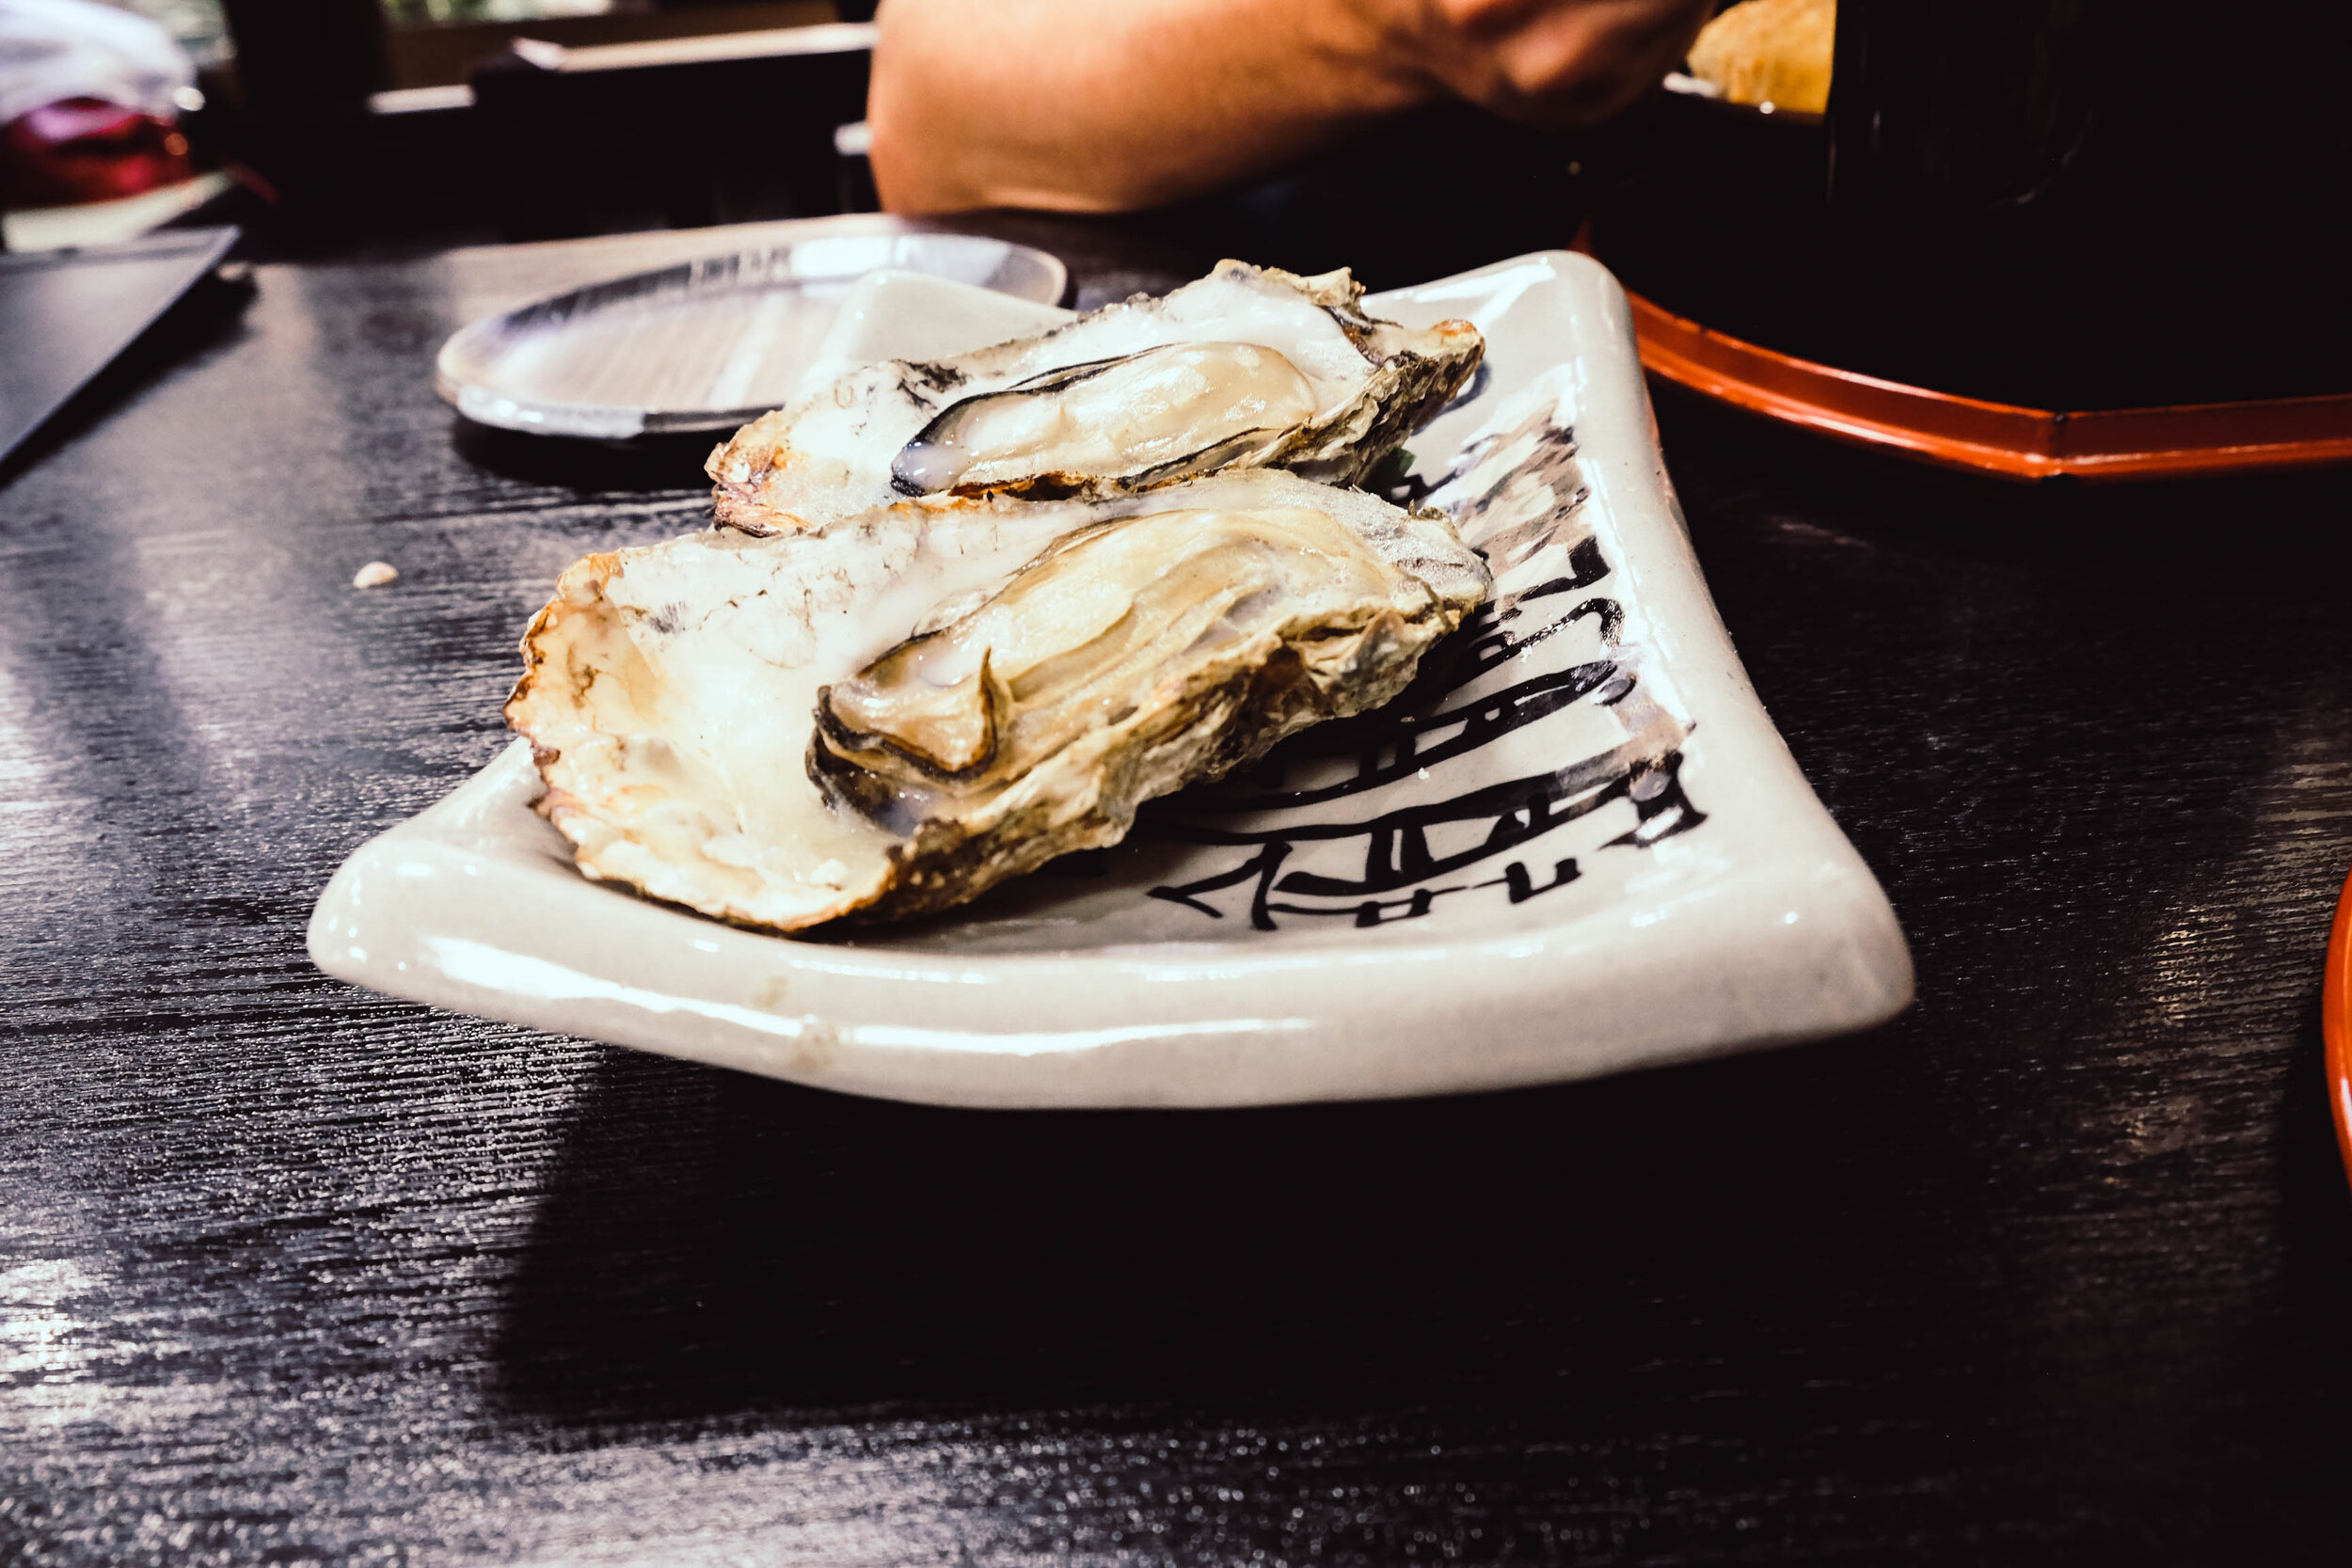 The culprit oysters.